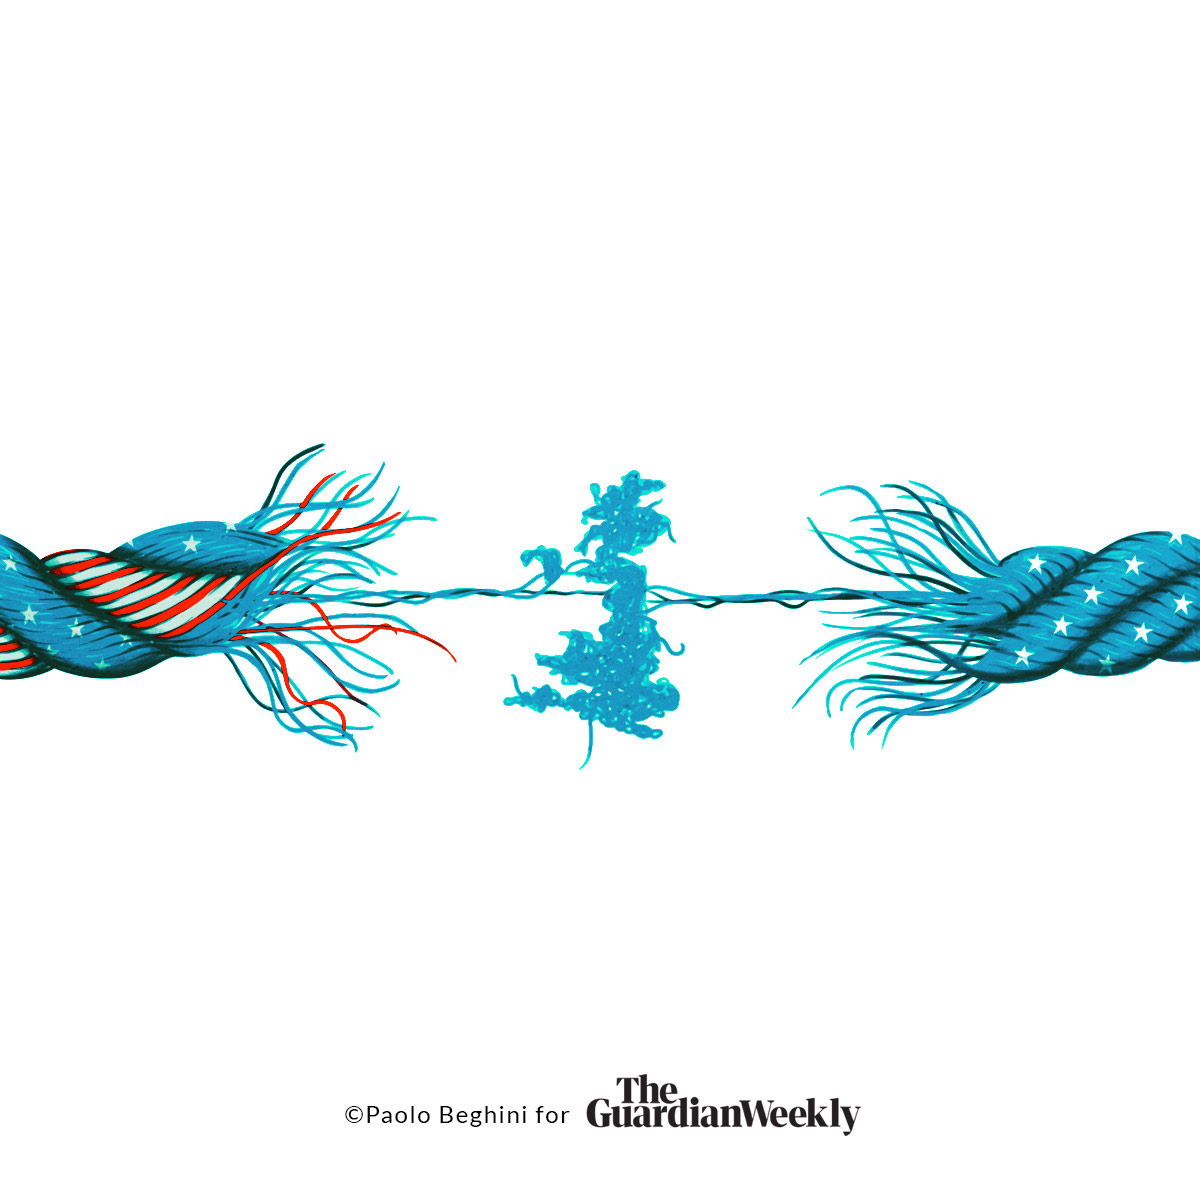 UK politics issue-spot illo